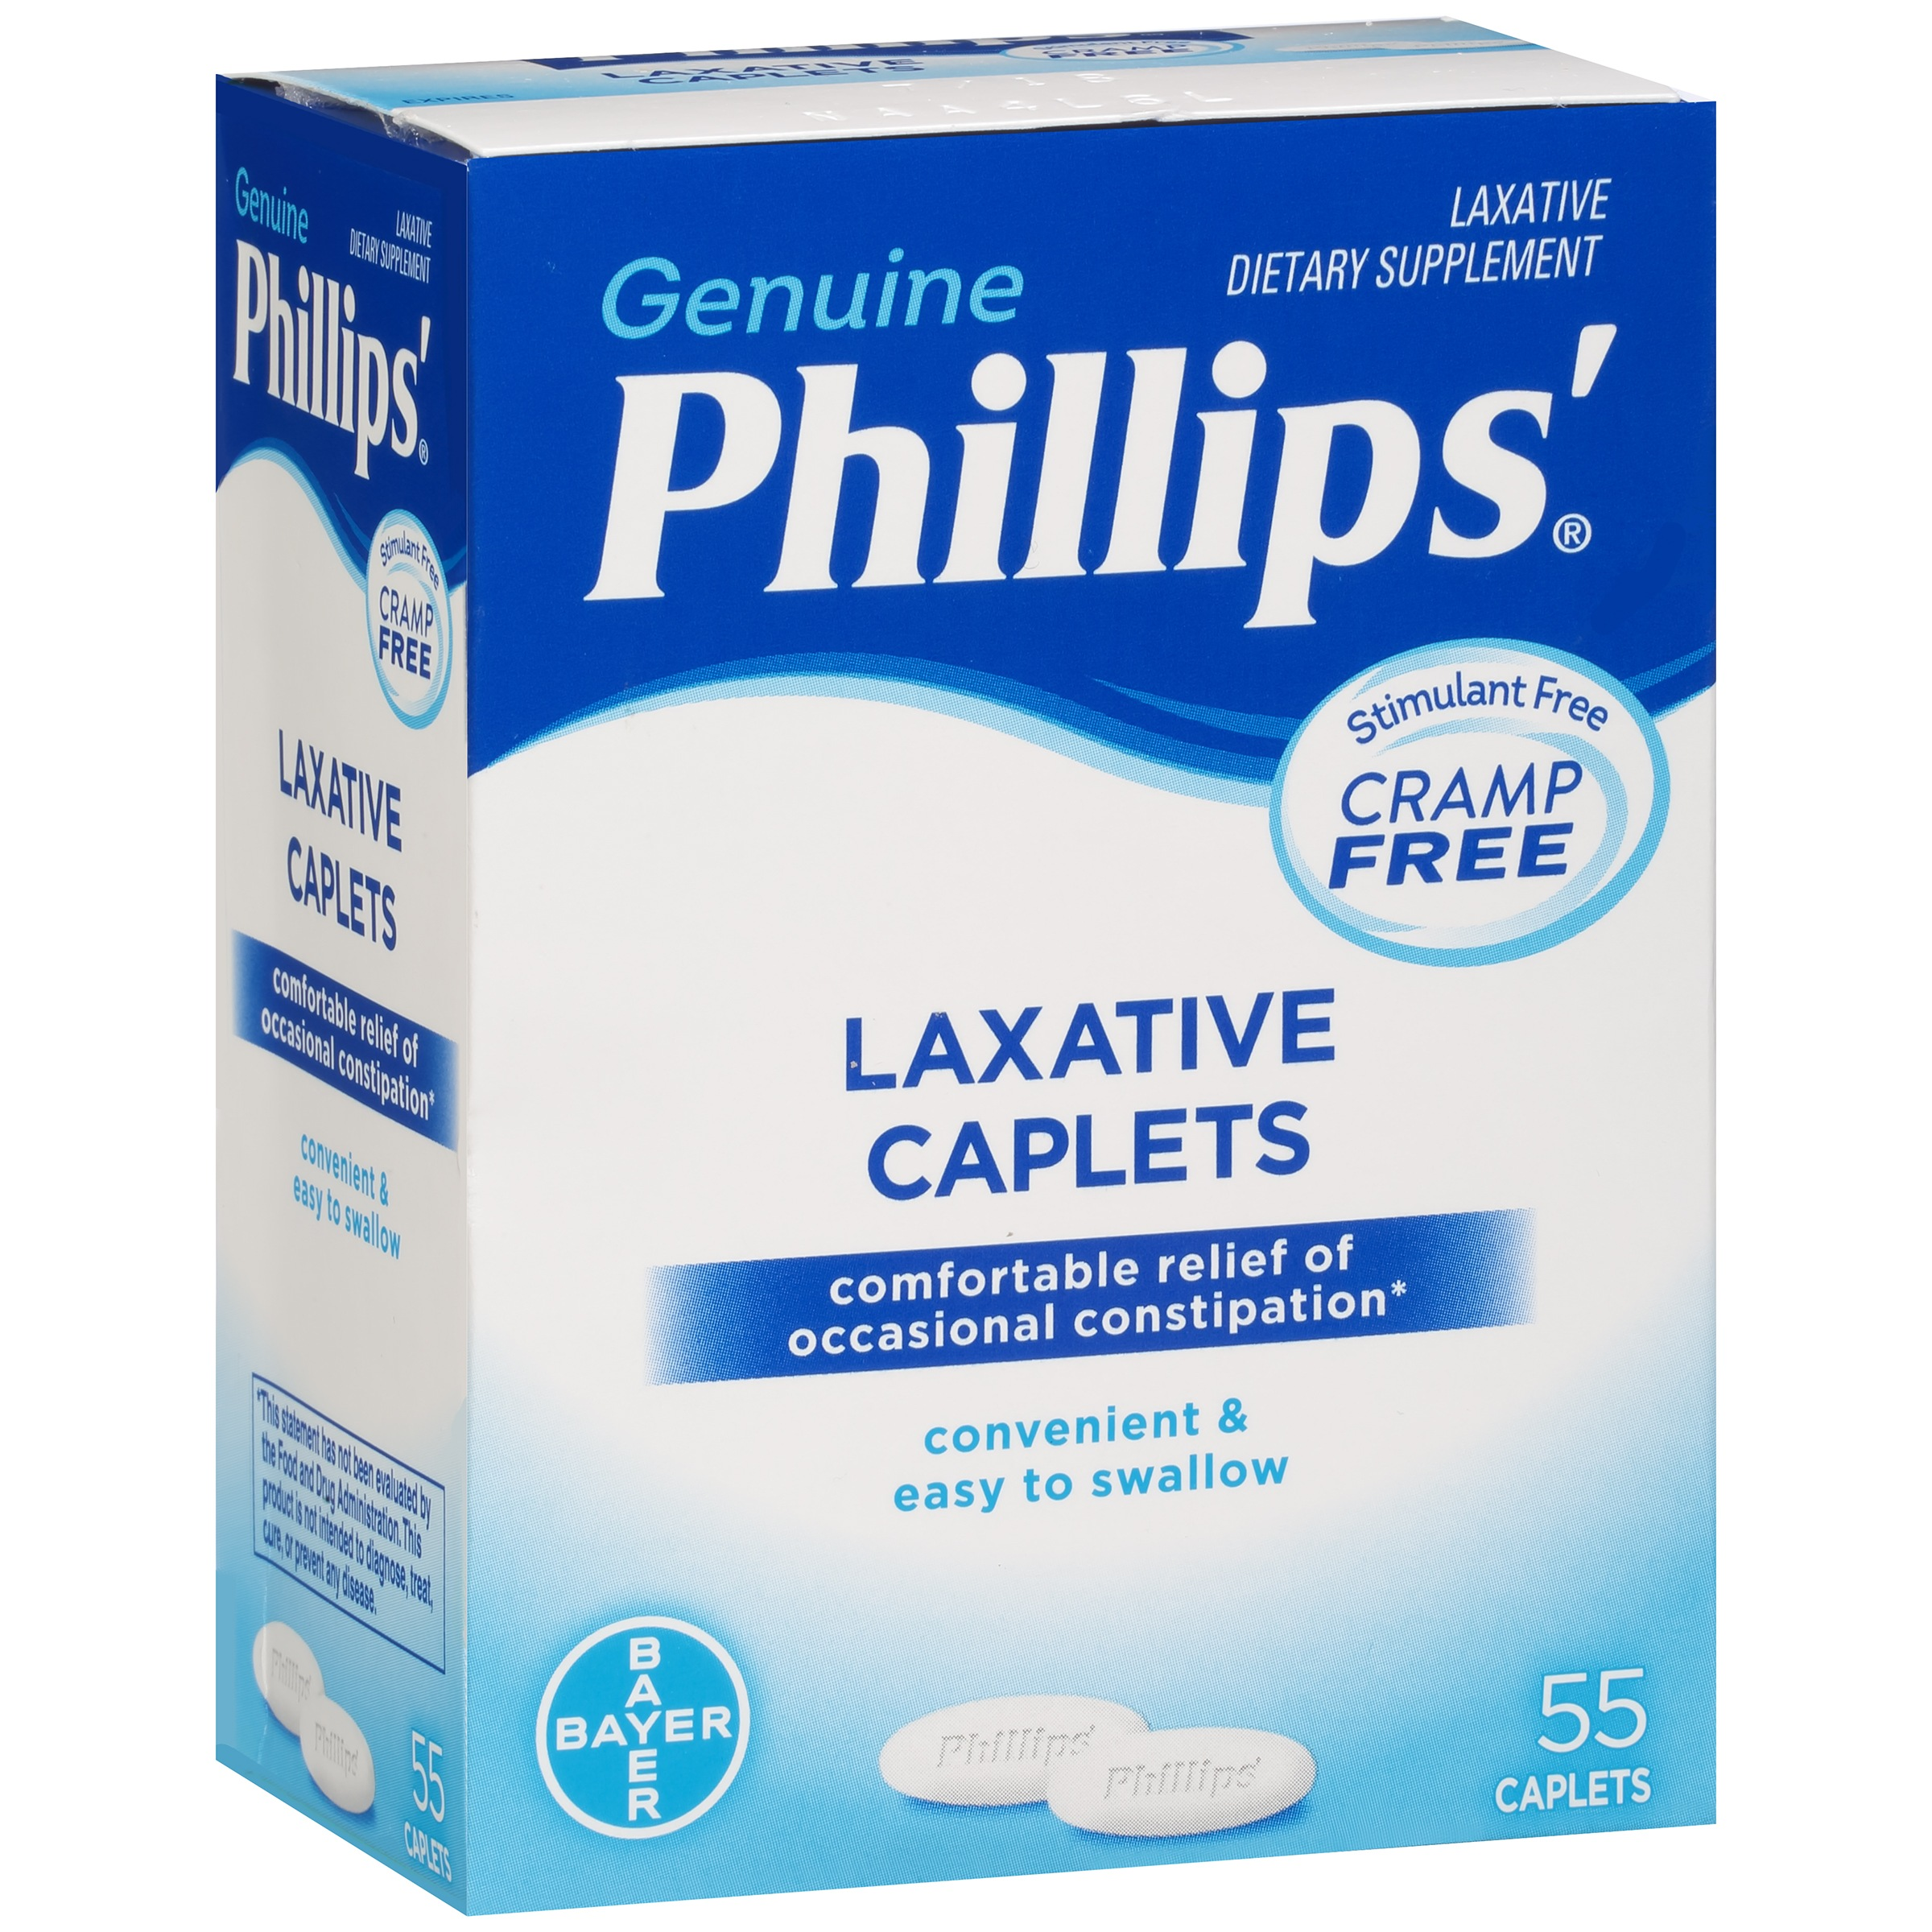 Phillips 174 Laxative Dietary Supplement Caplets 55 Ct Box